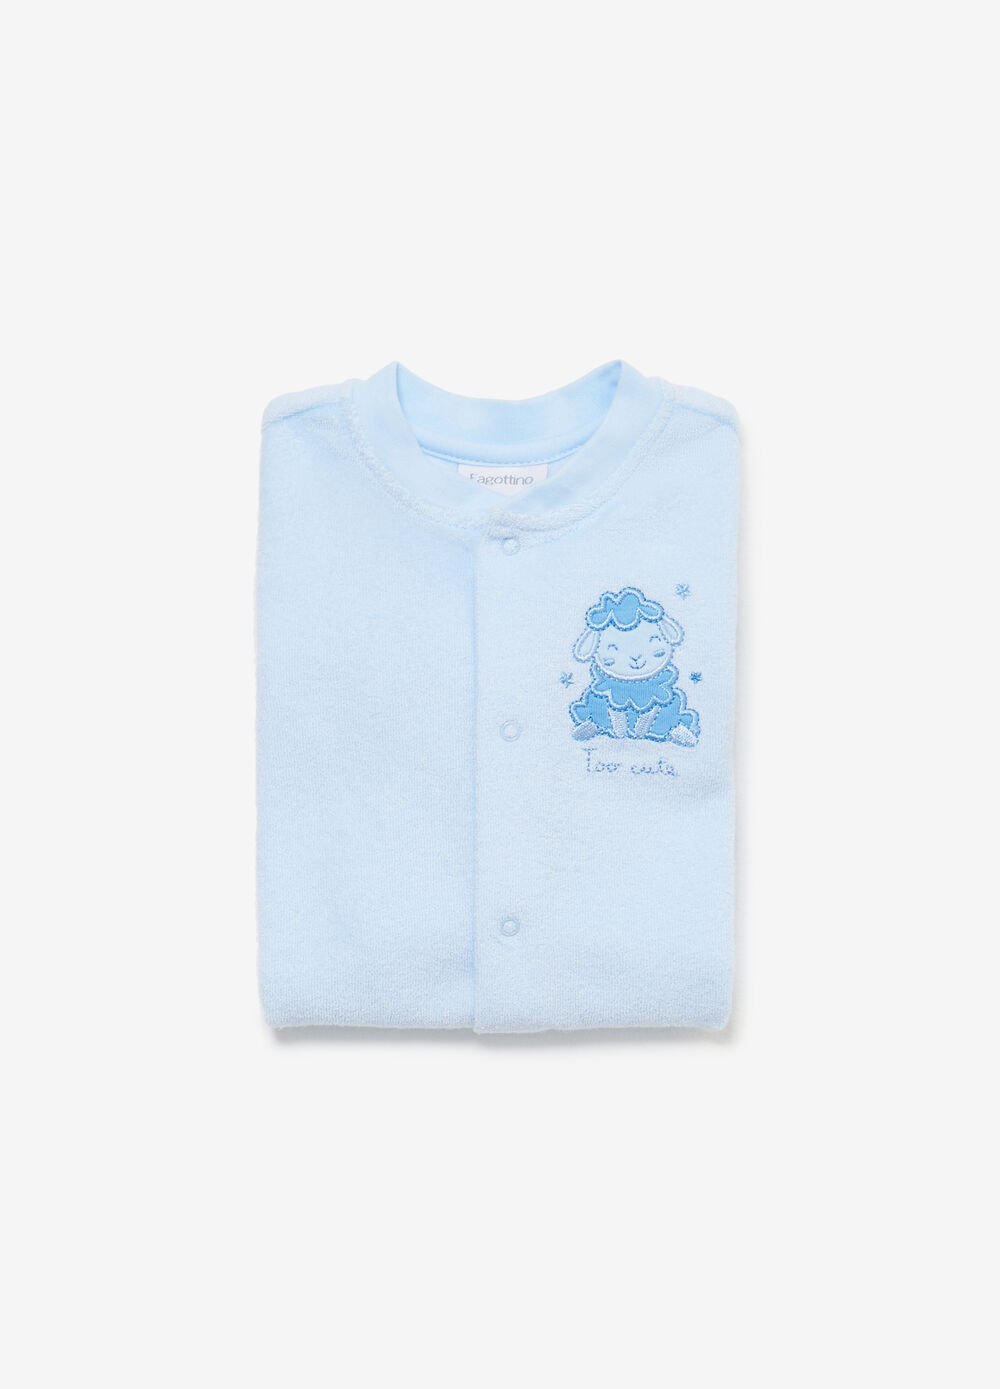 Cotton blend sleepsuit with patch